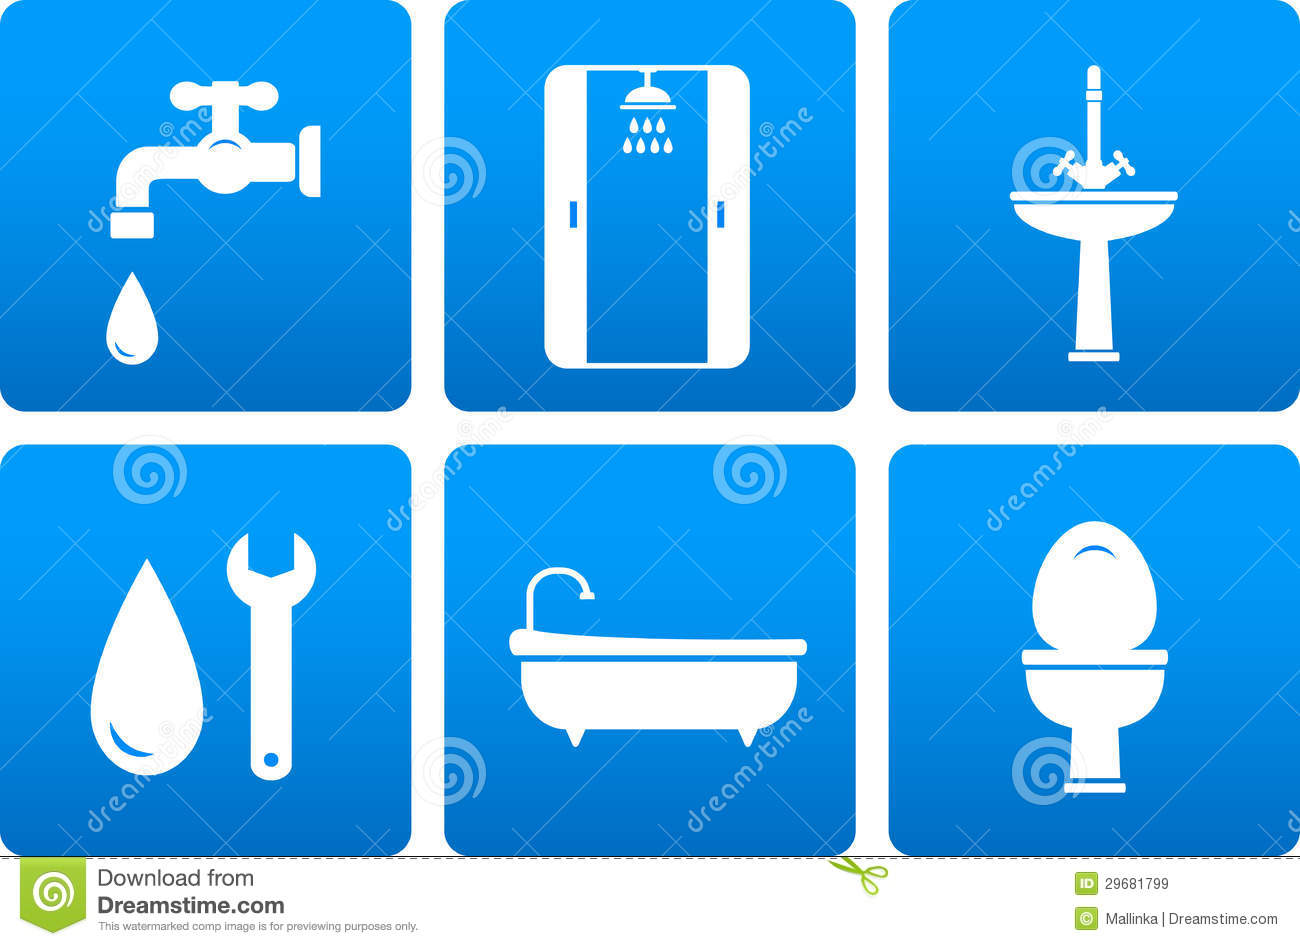 Royalty Free Stock Images Set Plumbing Icons Image29681799 further Clip 12528680 Stock Footage Winter Landscape With Falling Snow On Christmas Eve as well Japan Air Lines To Take Delivery Of Their First 787 Dreamliner On March 25 together with Backyard Shed Studio additionally Rear Of The Vw Virtus Vw Polo Sedan Vw Vento Rendered 272087. on cabin plans